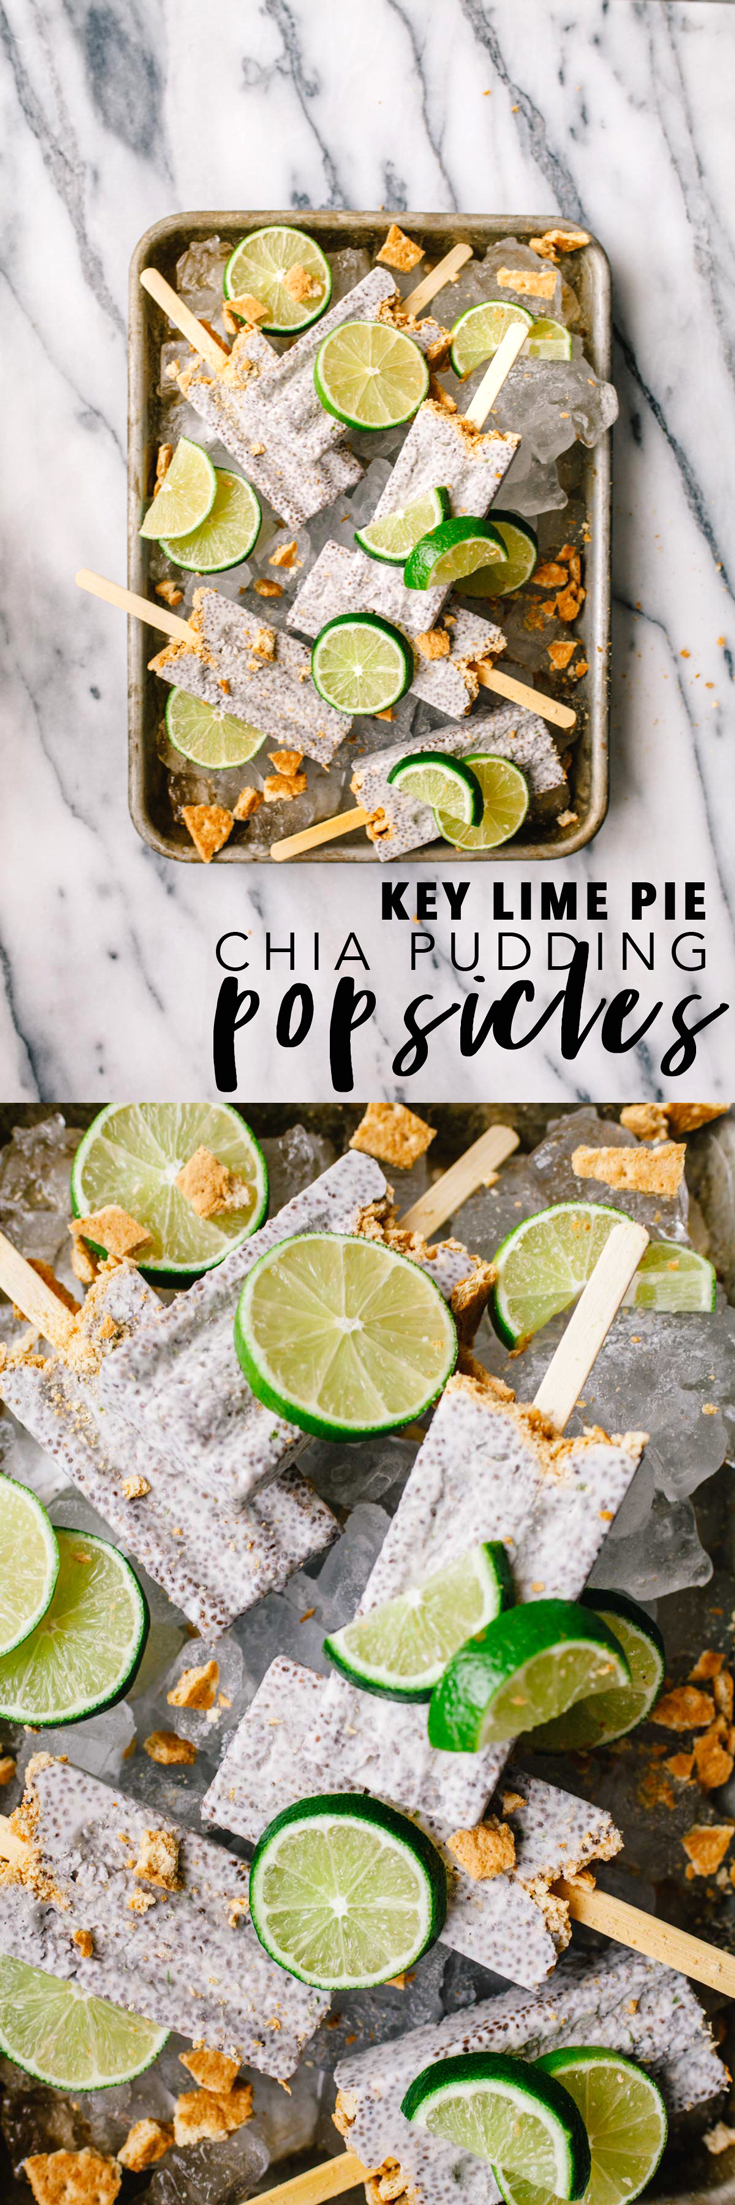 Completely dairy-free, just 5 ingredients, and insanely delicious, these Key Lime Pie Chia Pudding Popsicles are literally just frozen breakfast. #chiapudding #keylimepie #popsicles #popsicleweek | Brewing Happiness